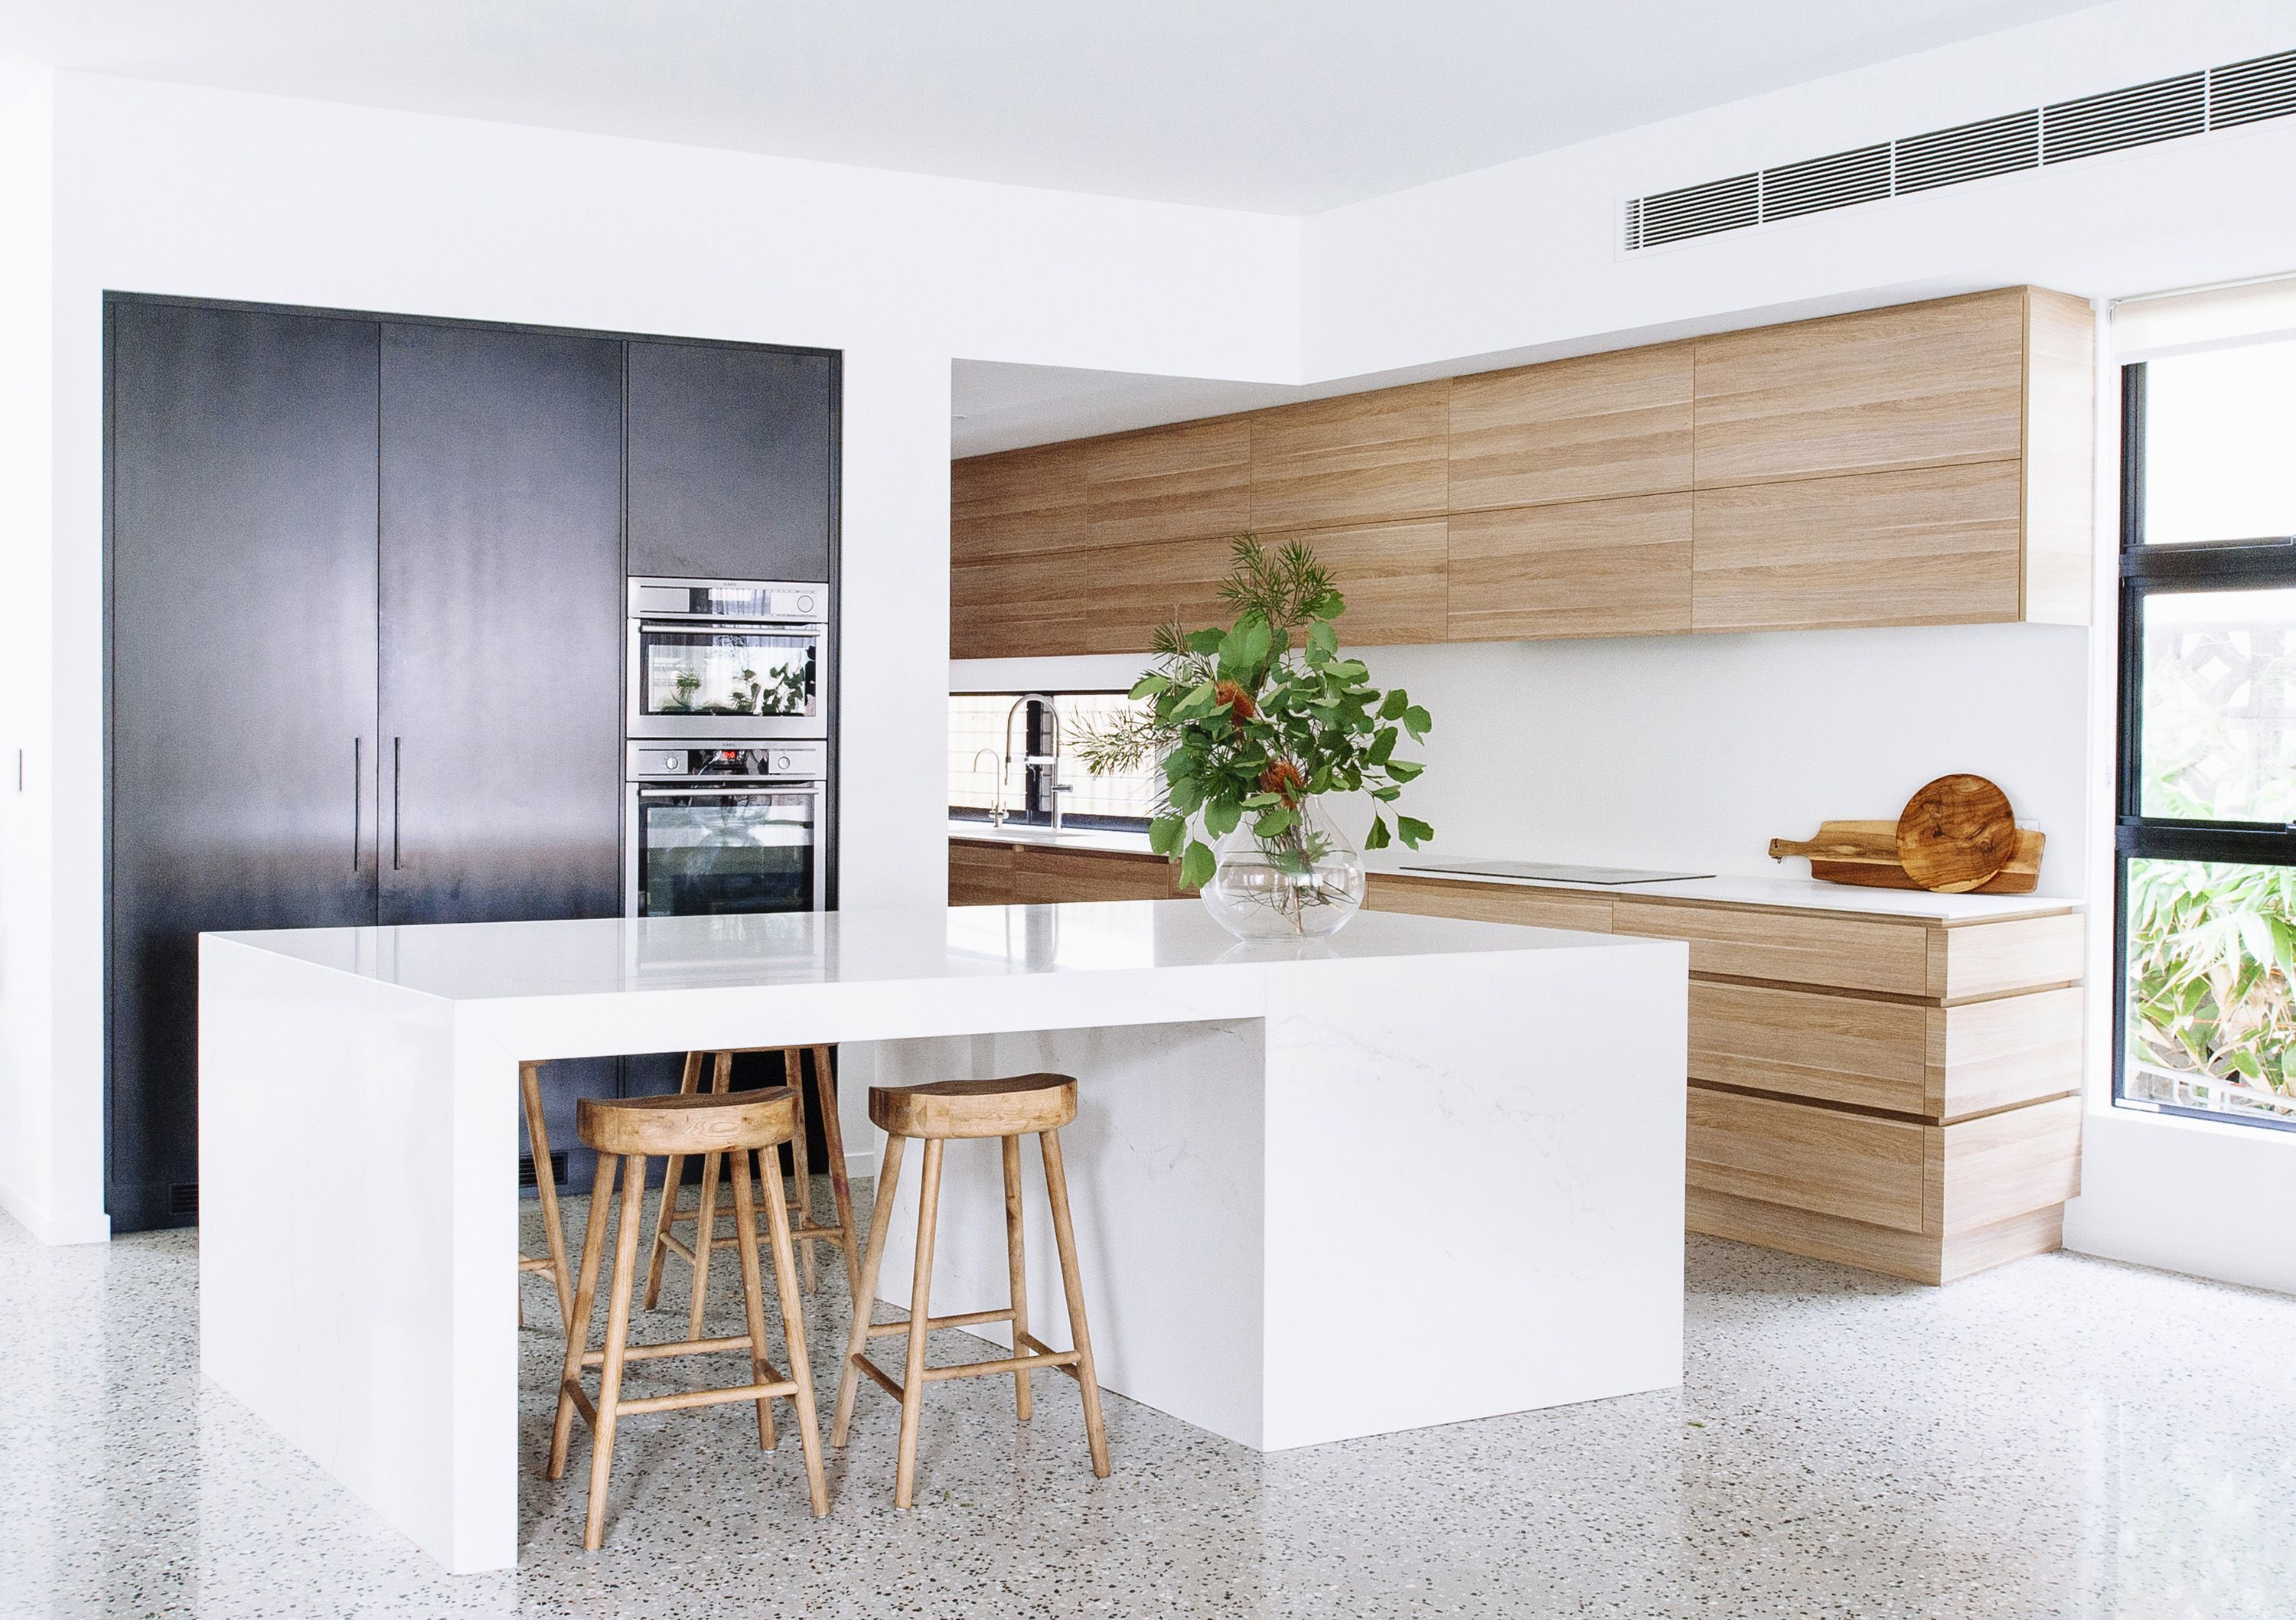 John campbell design colour blocked kitchen in narrow home